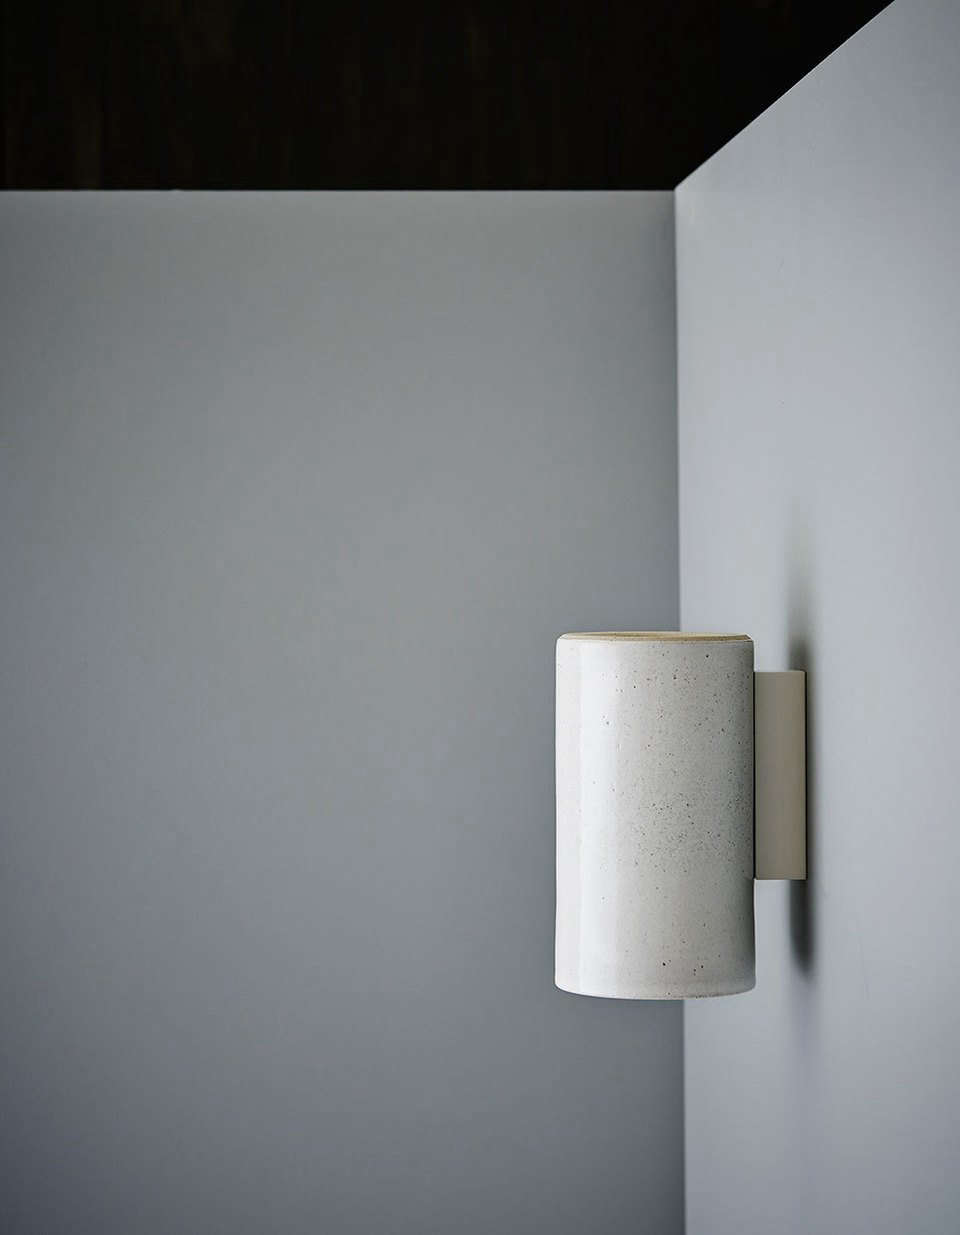 The Earth Wall Light in speckled white.